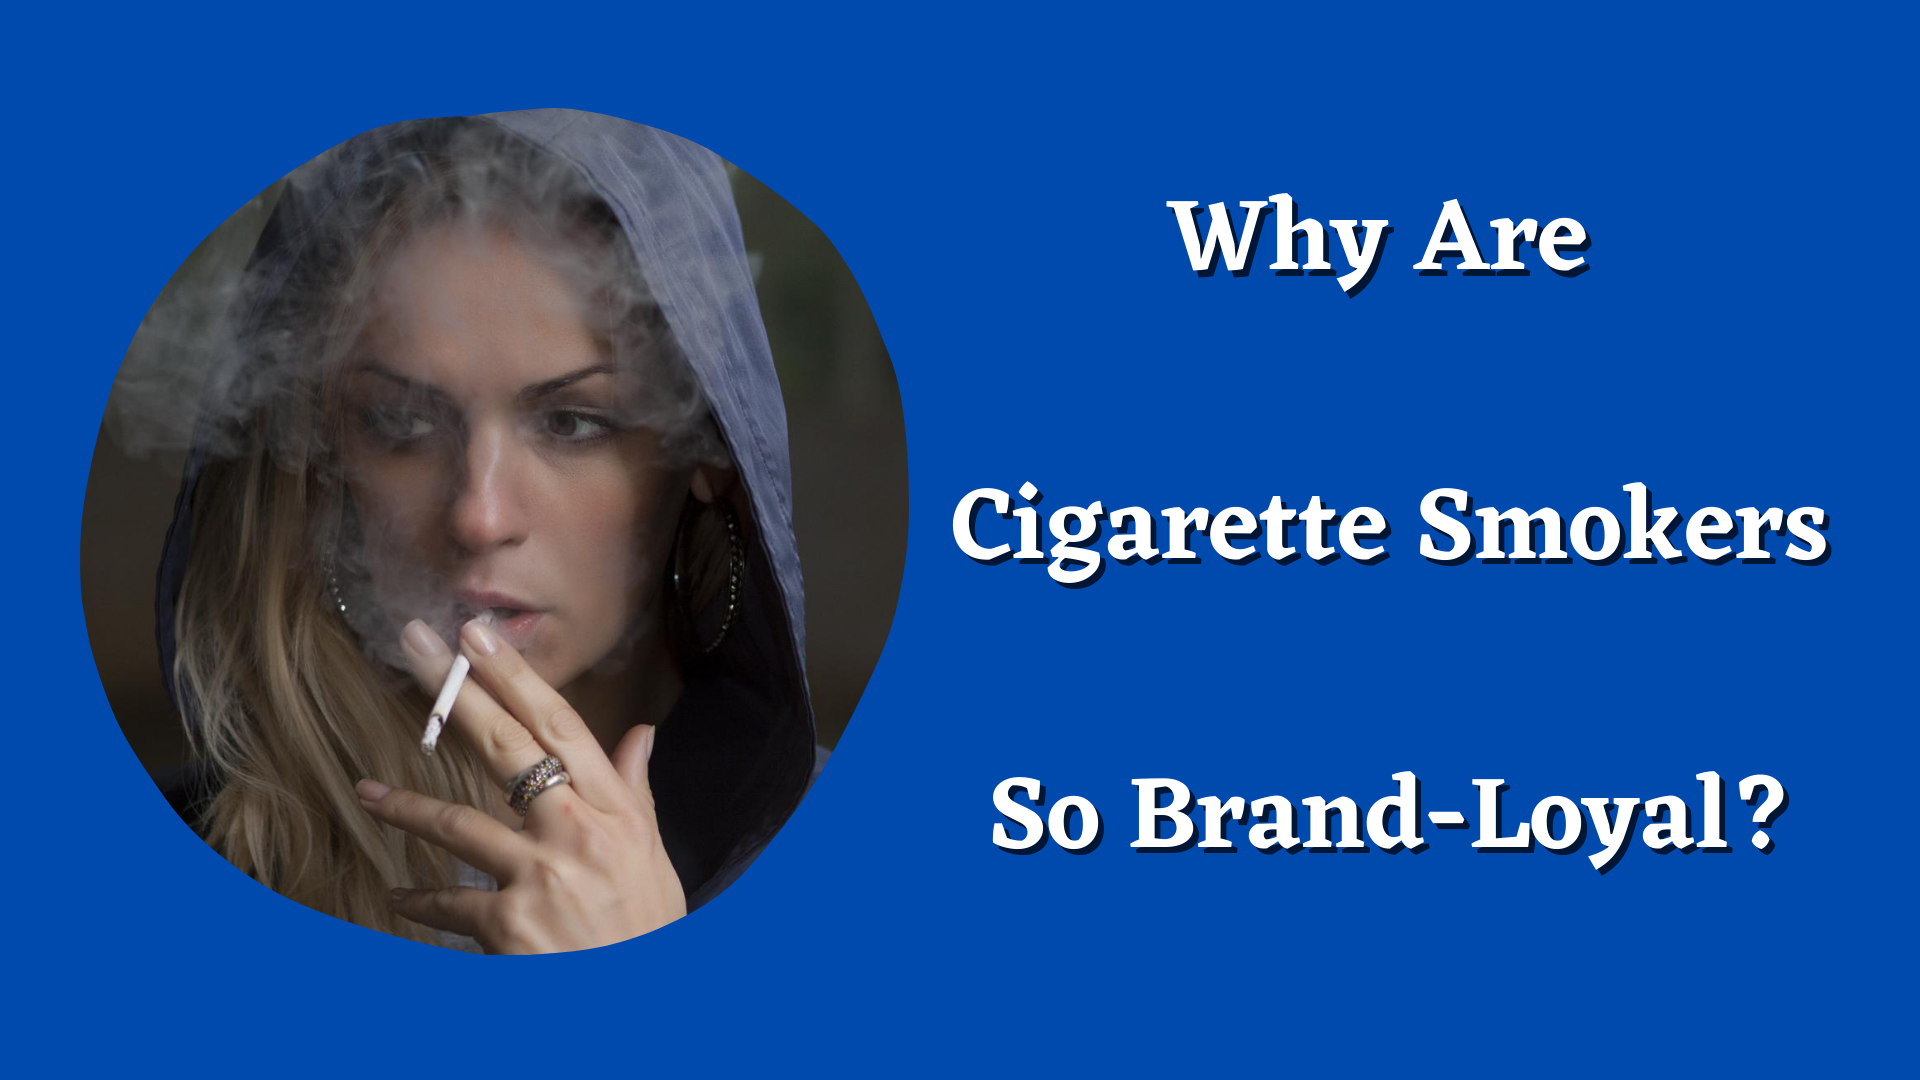 why are cigarette smokers so brand-loyal